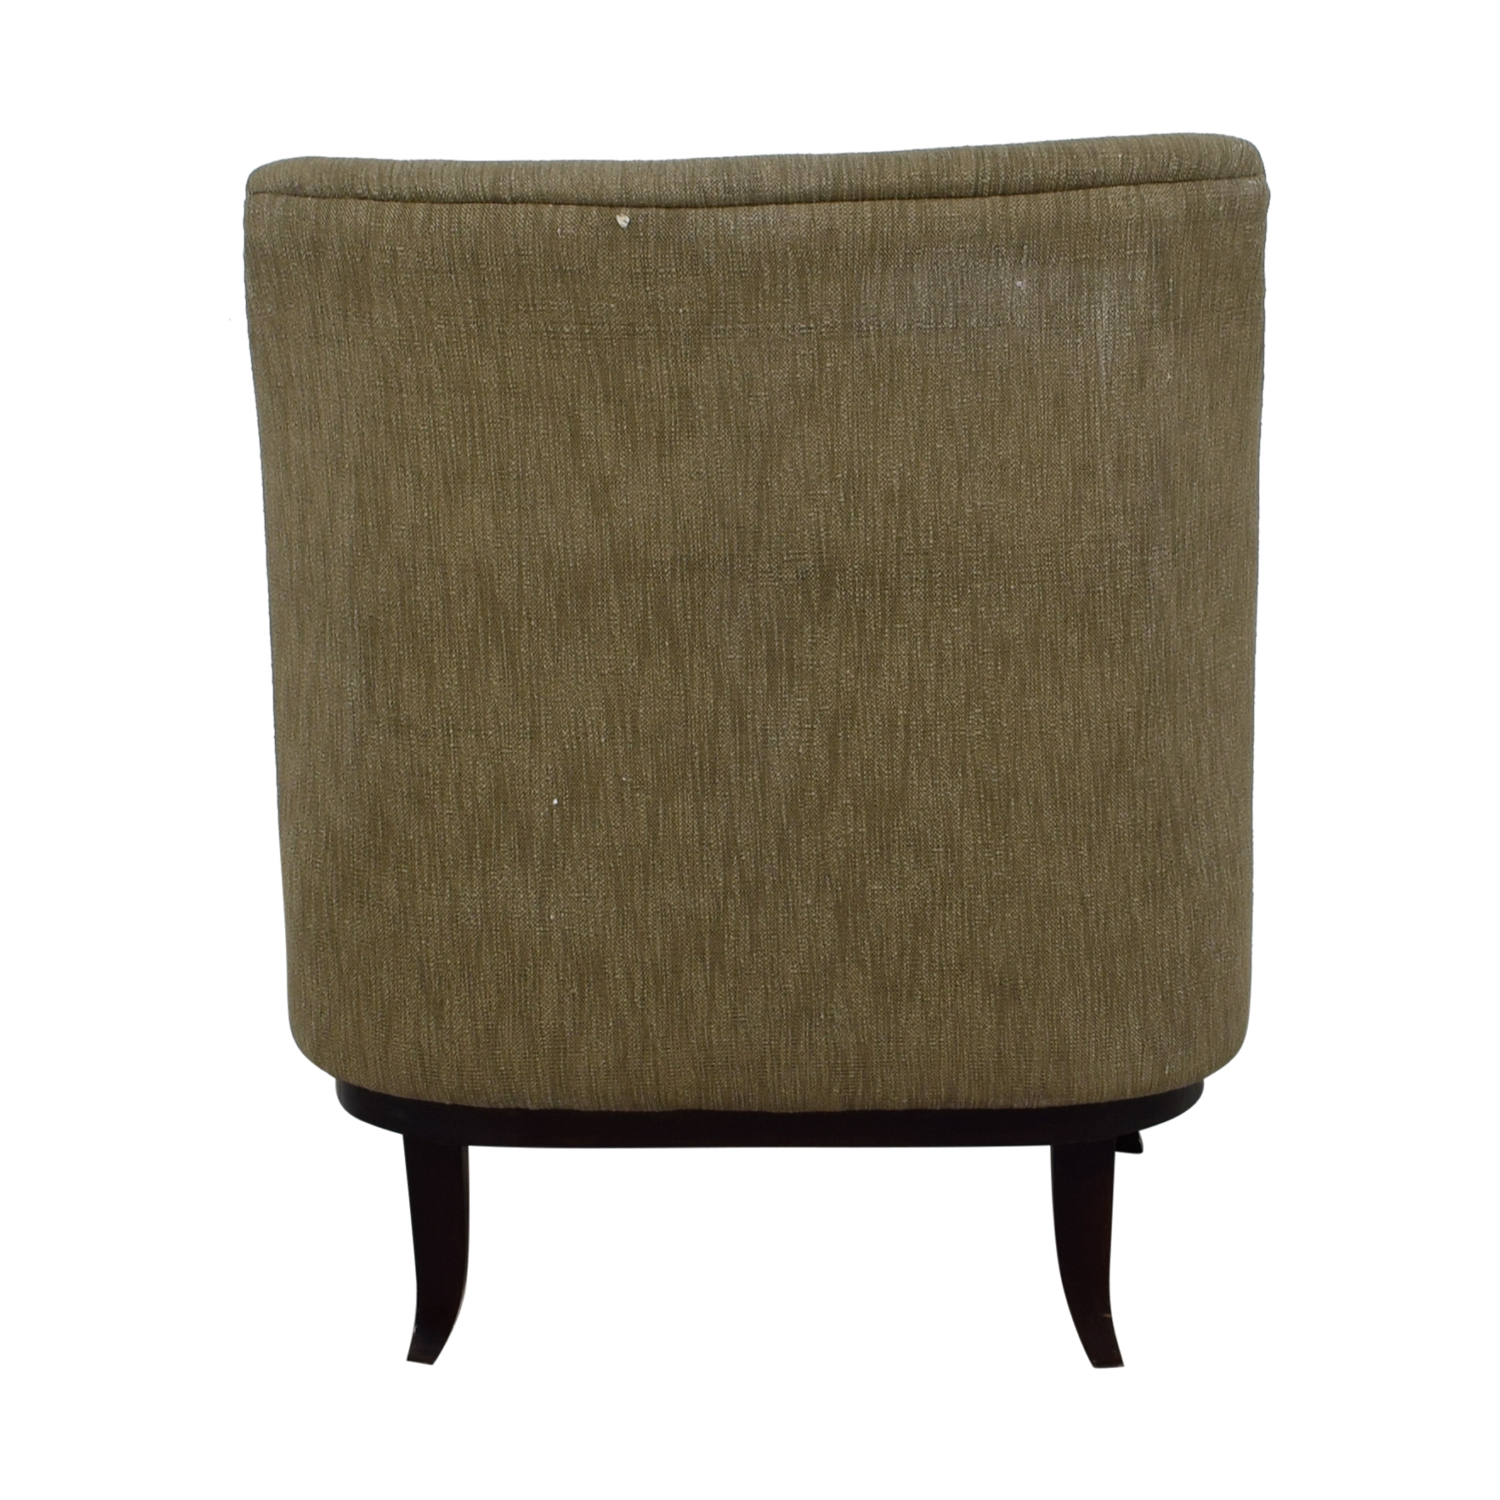 [%83% Off – Manor And Mews Manor And Mews Cary Grey Armchair And Foot Pertaining To Recent Manor Grey Swivel Chairs|manor Grey Swivel Chairs Pertaining To Most Up To Date 83% Off – Manor And Mews Manor And Mews Cary Grey Armchair And Foot|preferred Manor Grey Swivel Chairs With 83% Off – Manor And Mews Manor And Mews Cary Grey Armchair And Foot|trendy 83% Off – Manor And Mews Manor And Mews Cary Grey Armchair And Foot Throughout Manor Grey Swivel Chairs%] (View 19 of 20)